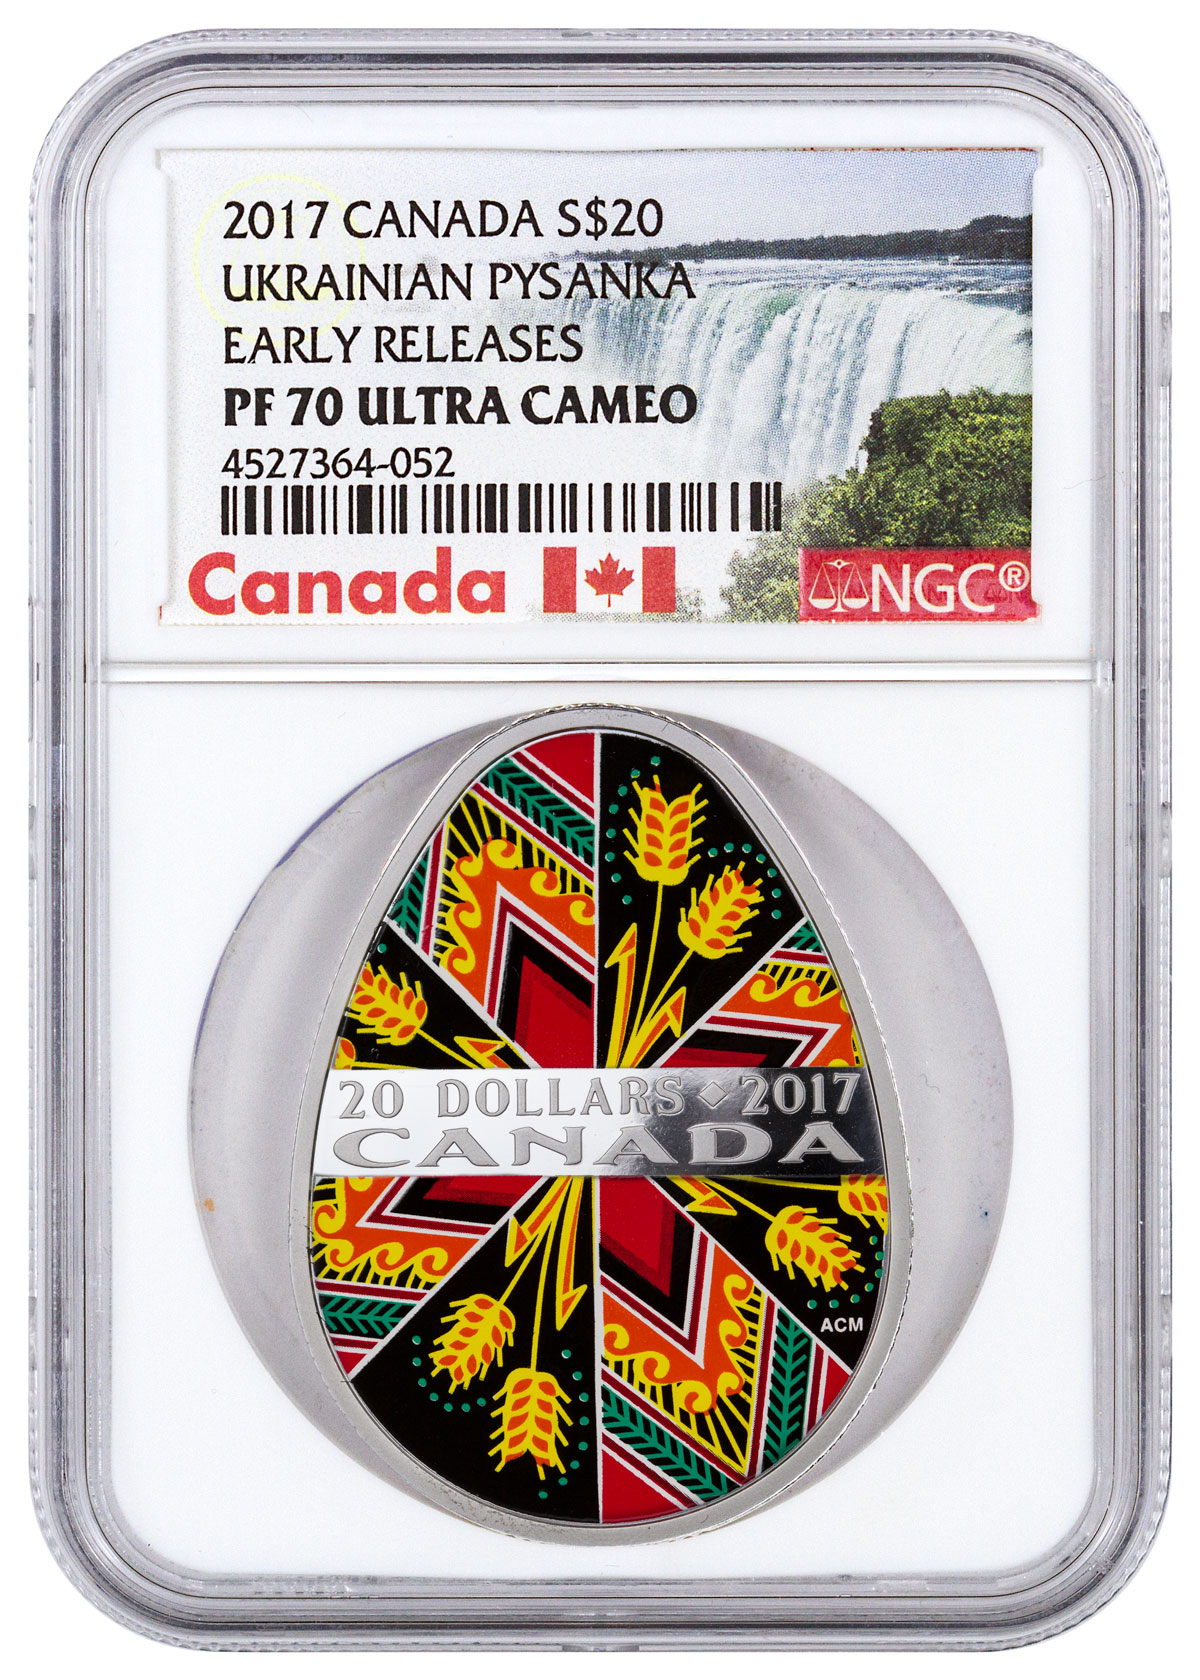 2017 Canada Ukrainian Pysanka Egg Shaped 1 oz Silver Colorized Proof $20 Coin NGC PF70 UC ER (Exclusive Canada Label)